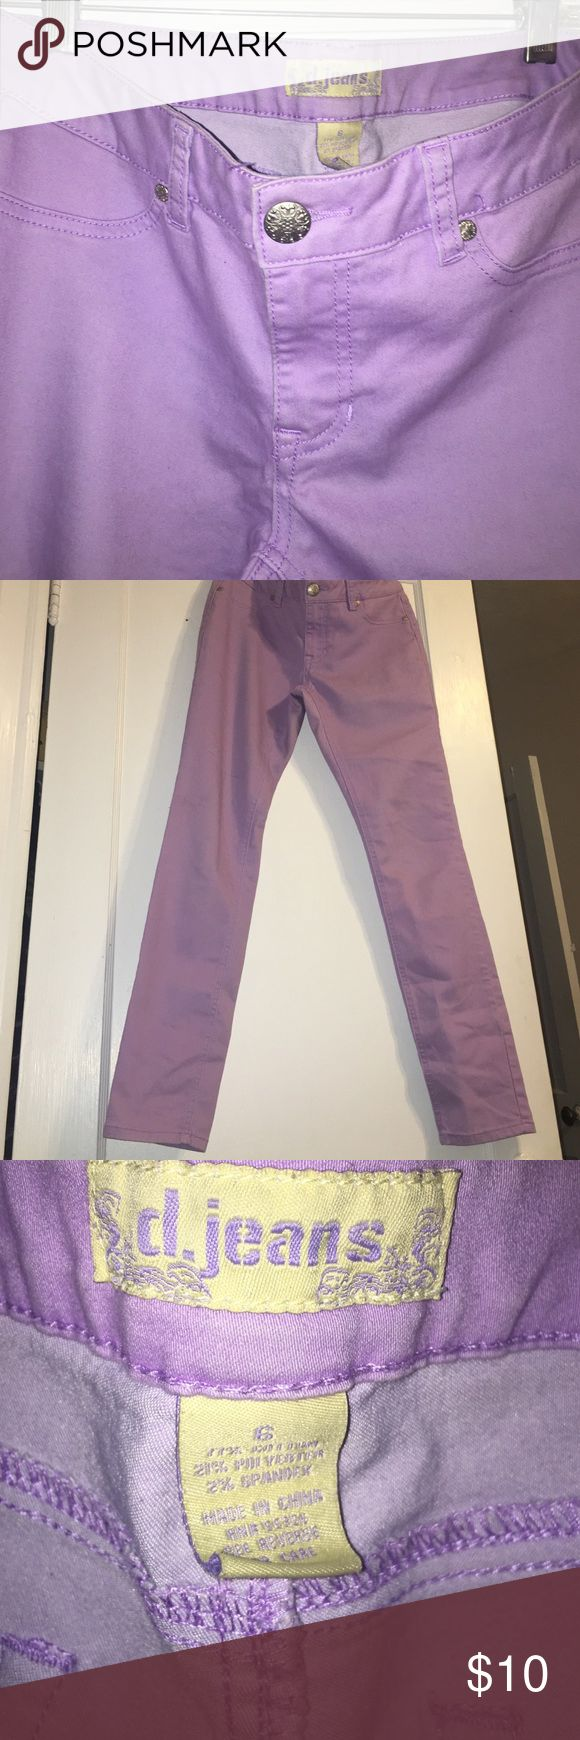 Lavender jeans - juniors , hits at the ankle Cute lavender jeans from D.Jeans, size 6 juniors, 77% cotton , 21% polyester, 2% spandex d. jeans Pants